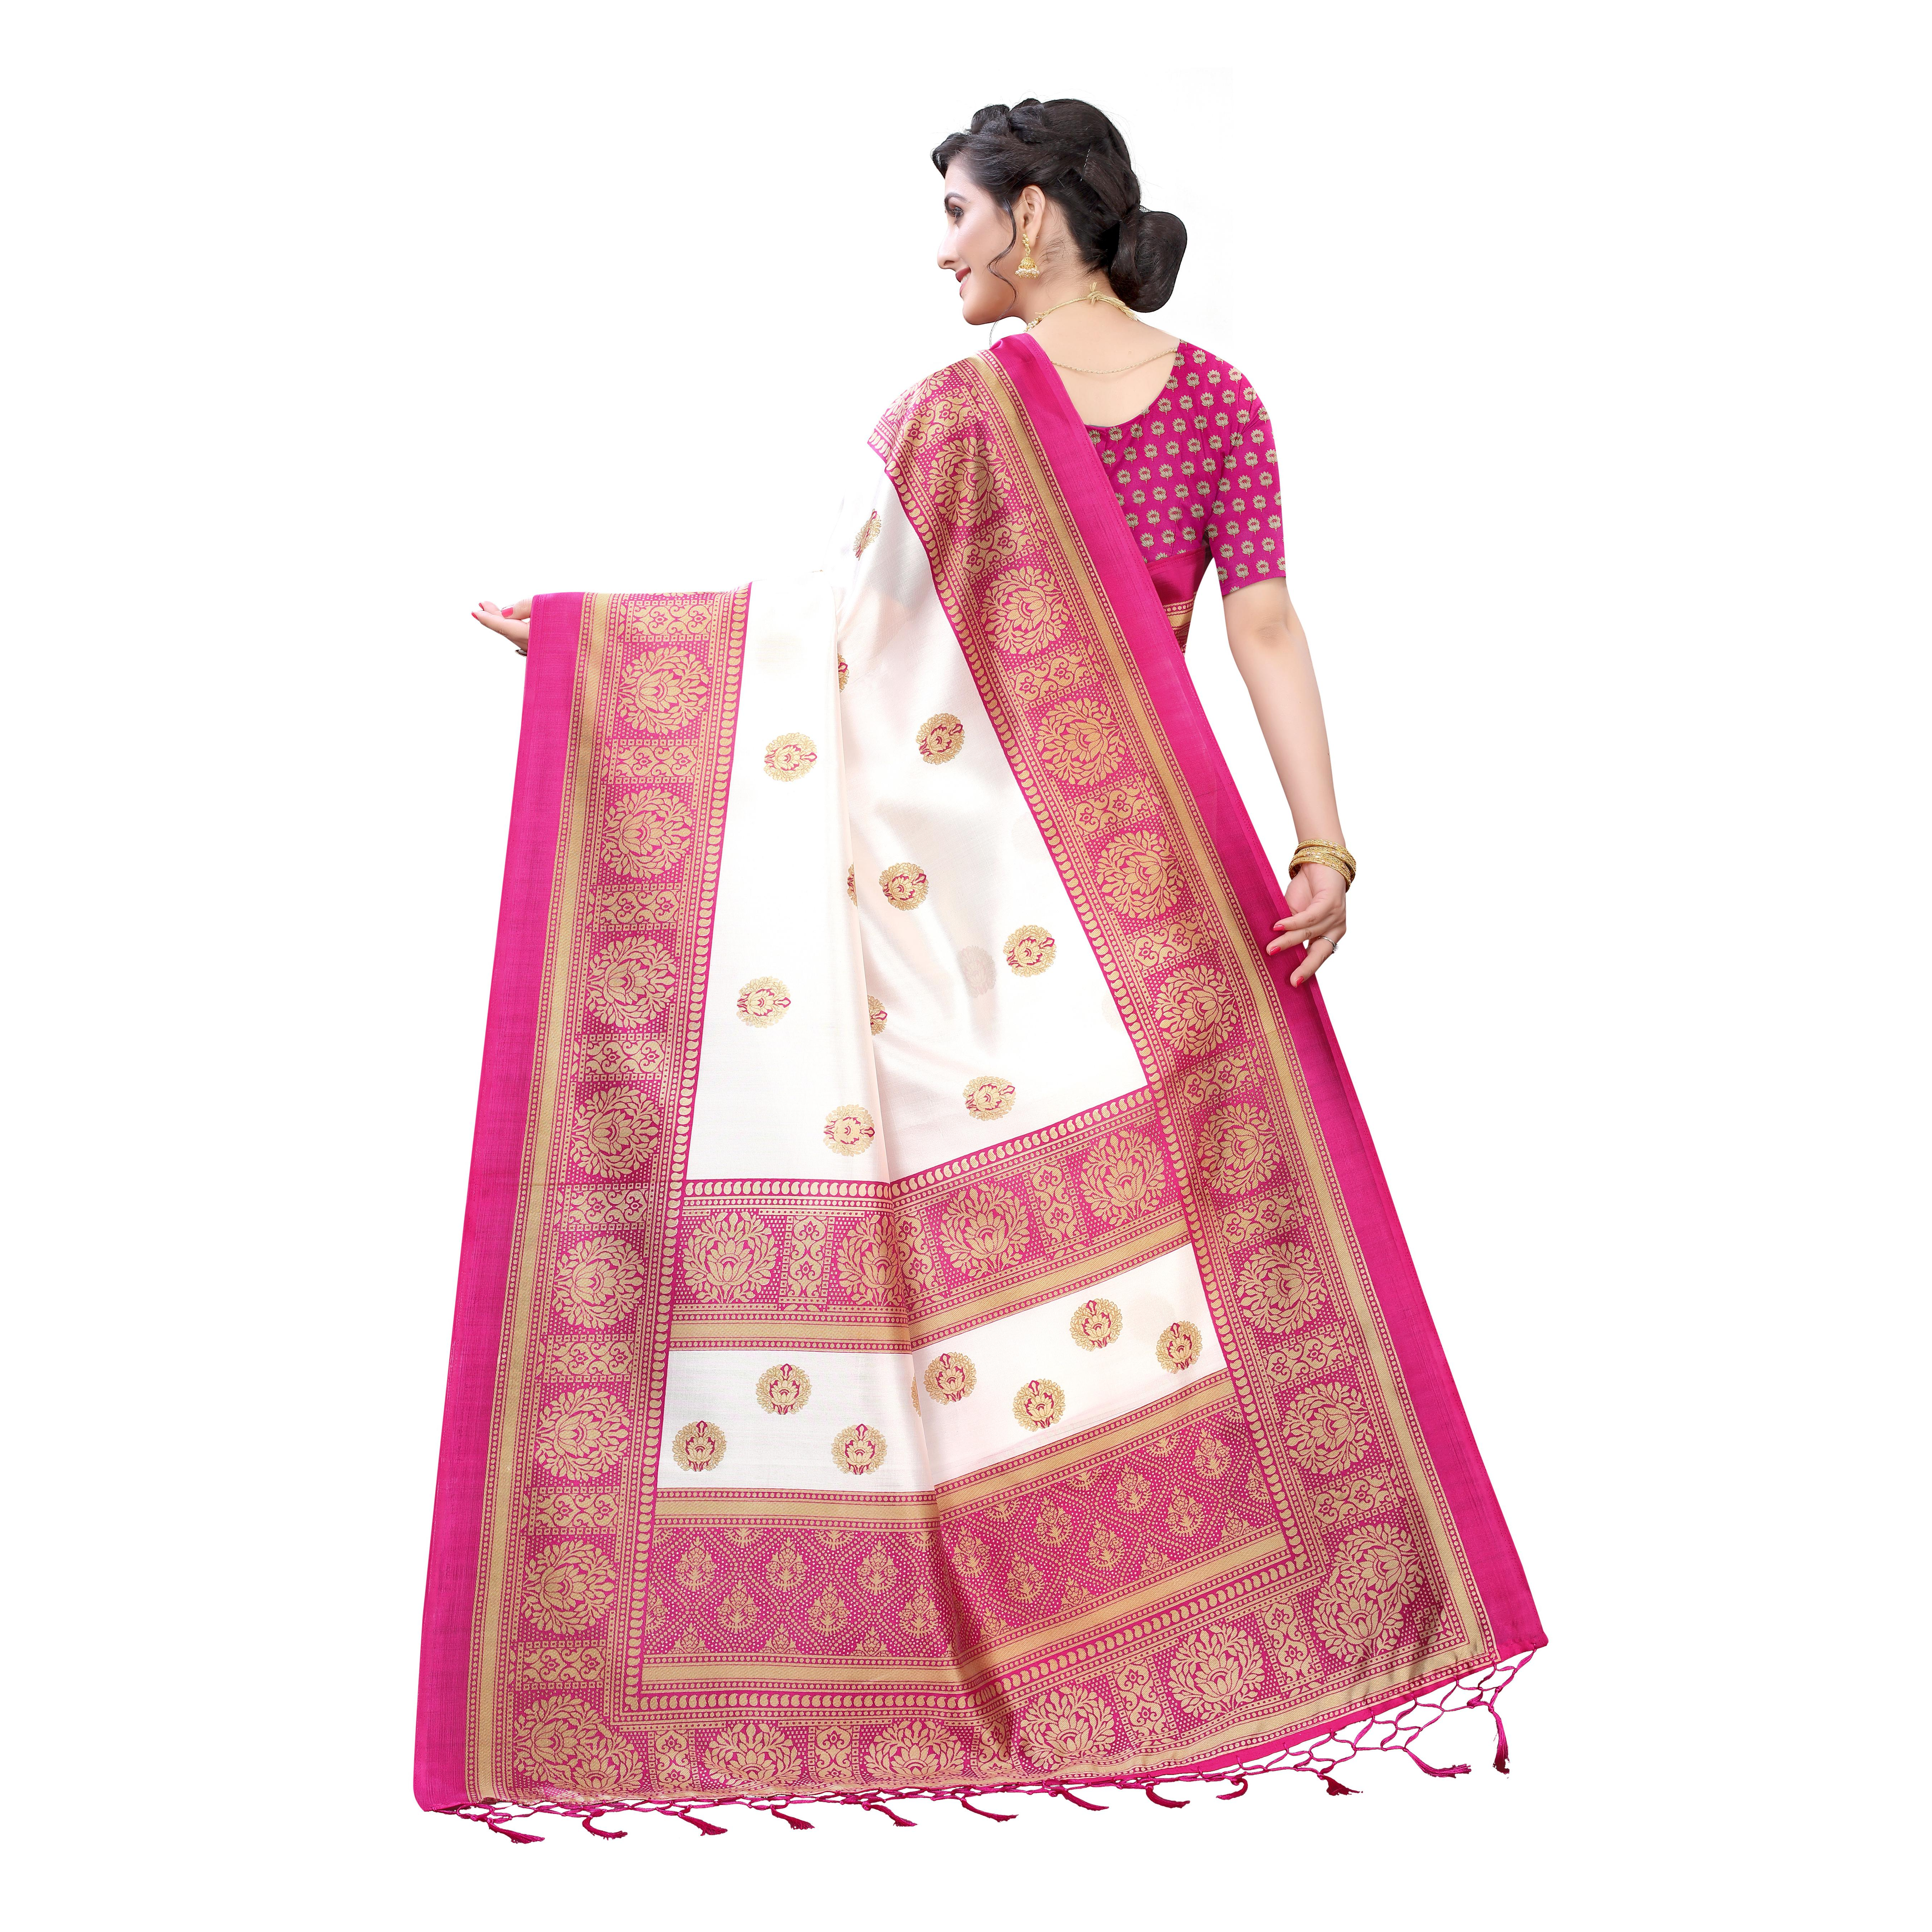 Dazzling White-Pink Colored Festive Wear Printed Art Silk Saree With Tassels